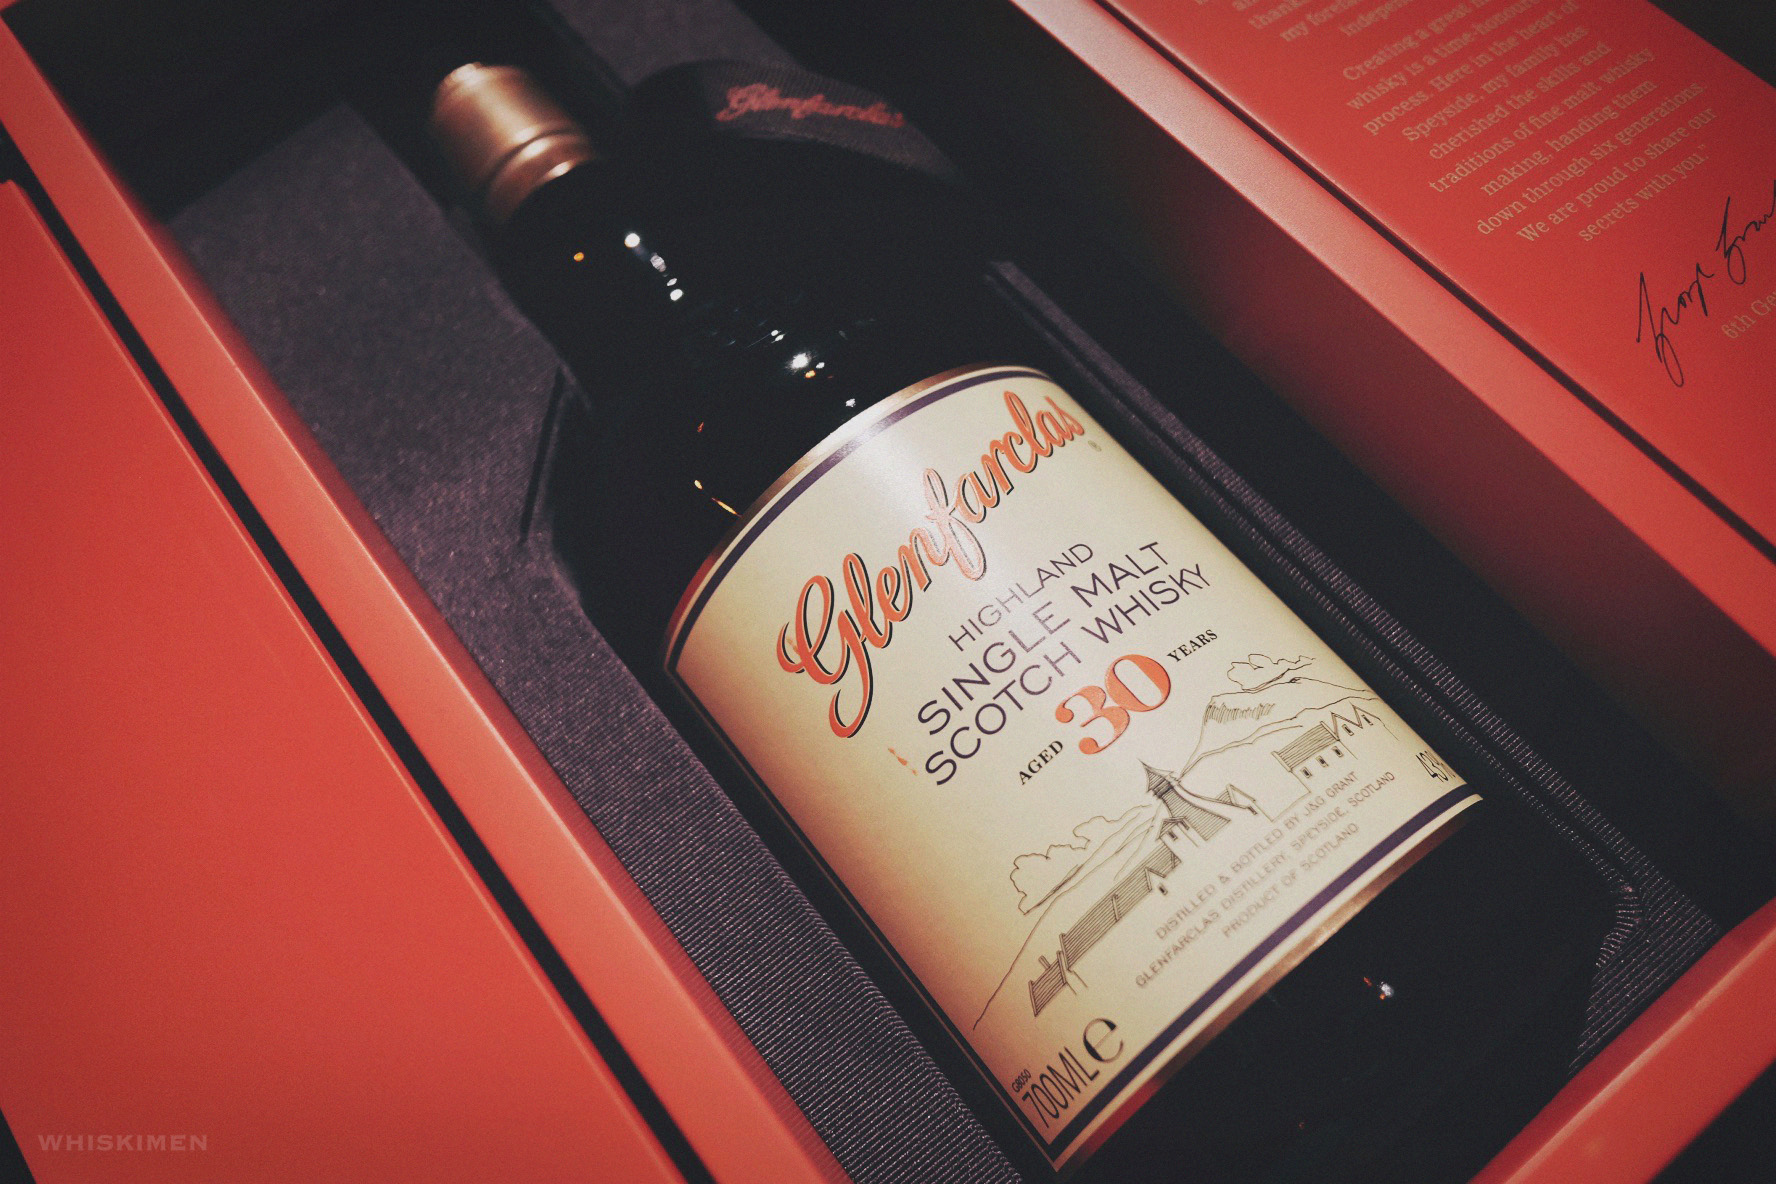 Glenfarclas 30 Year Old Single Malt Scotch Whisky (Warehouse Edition 2016)